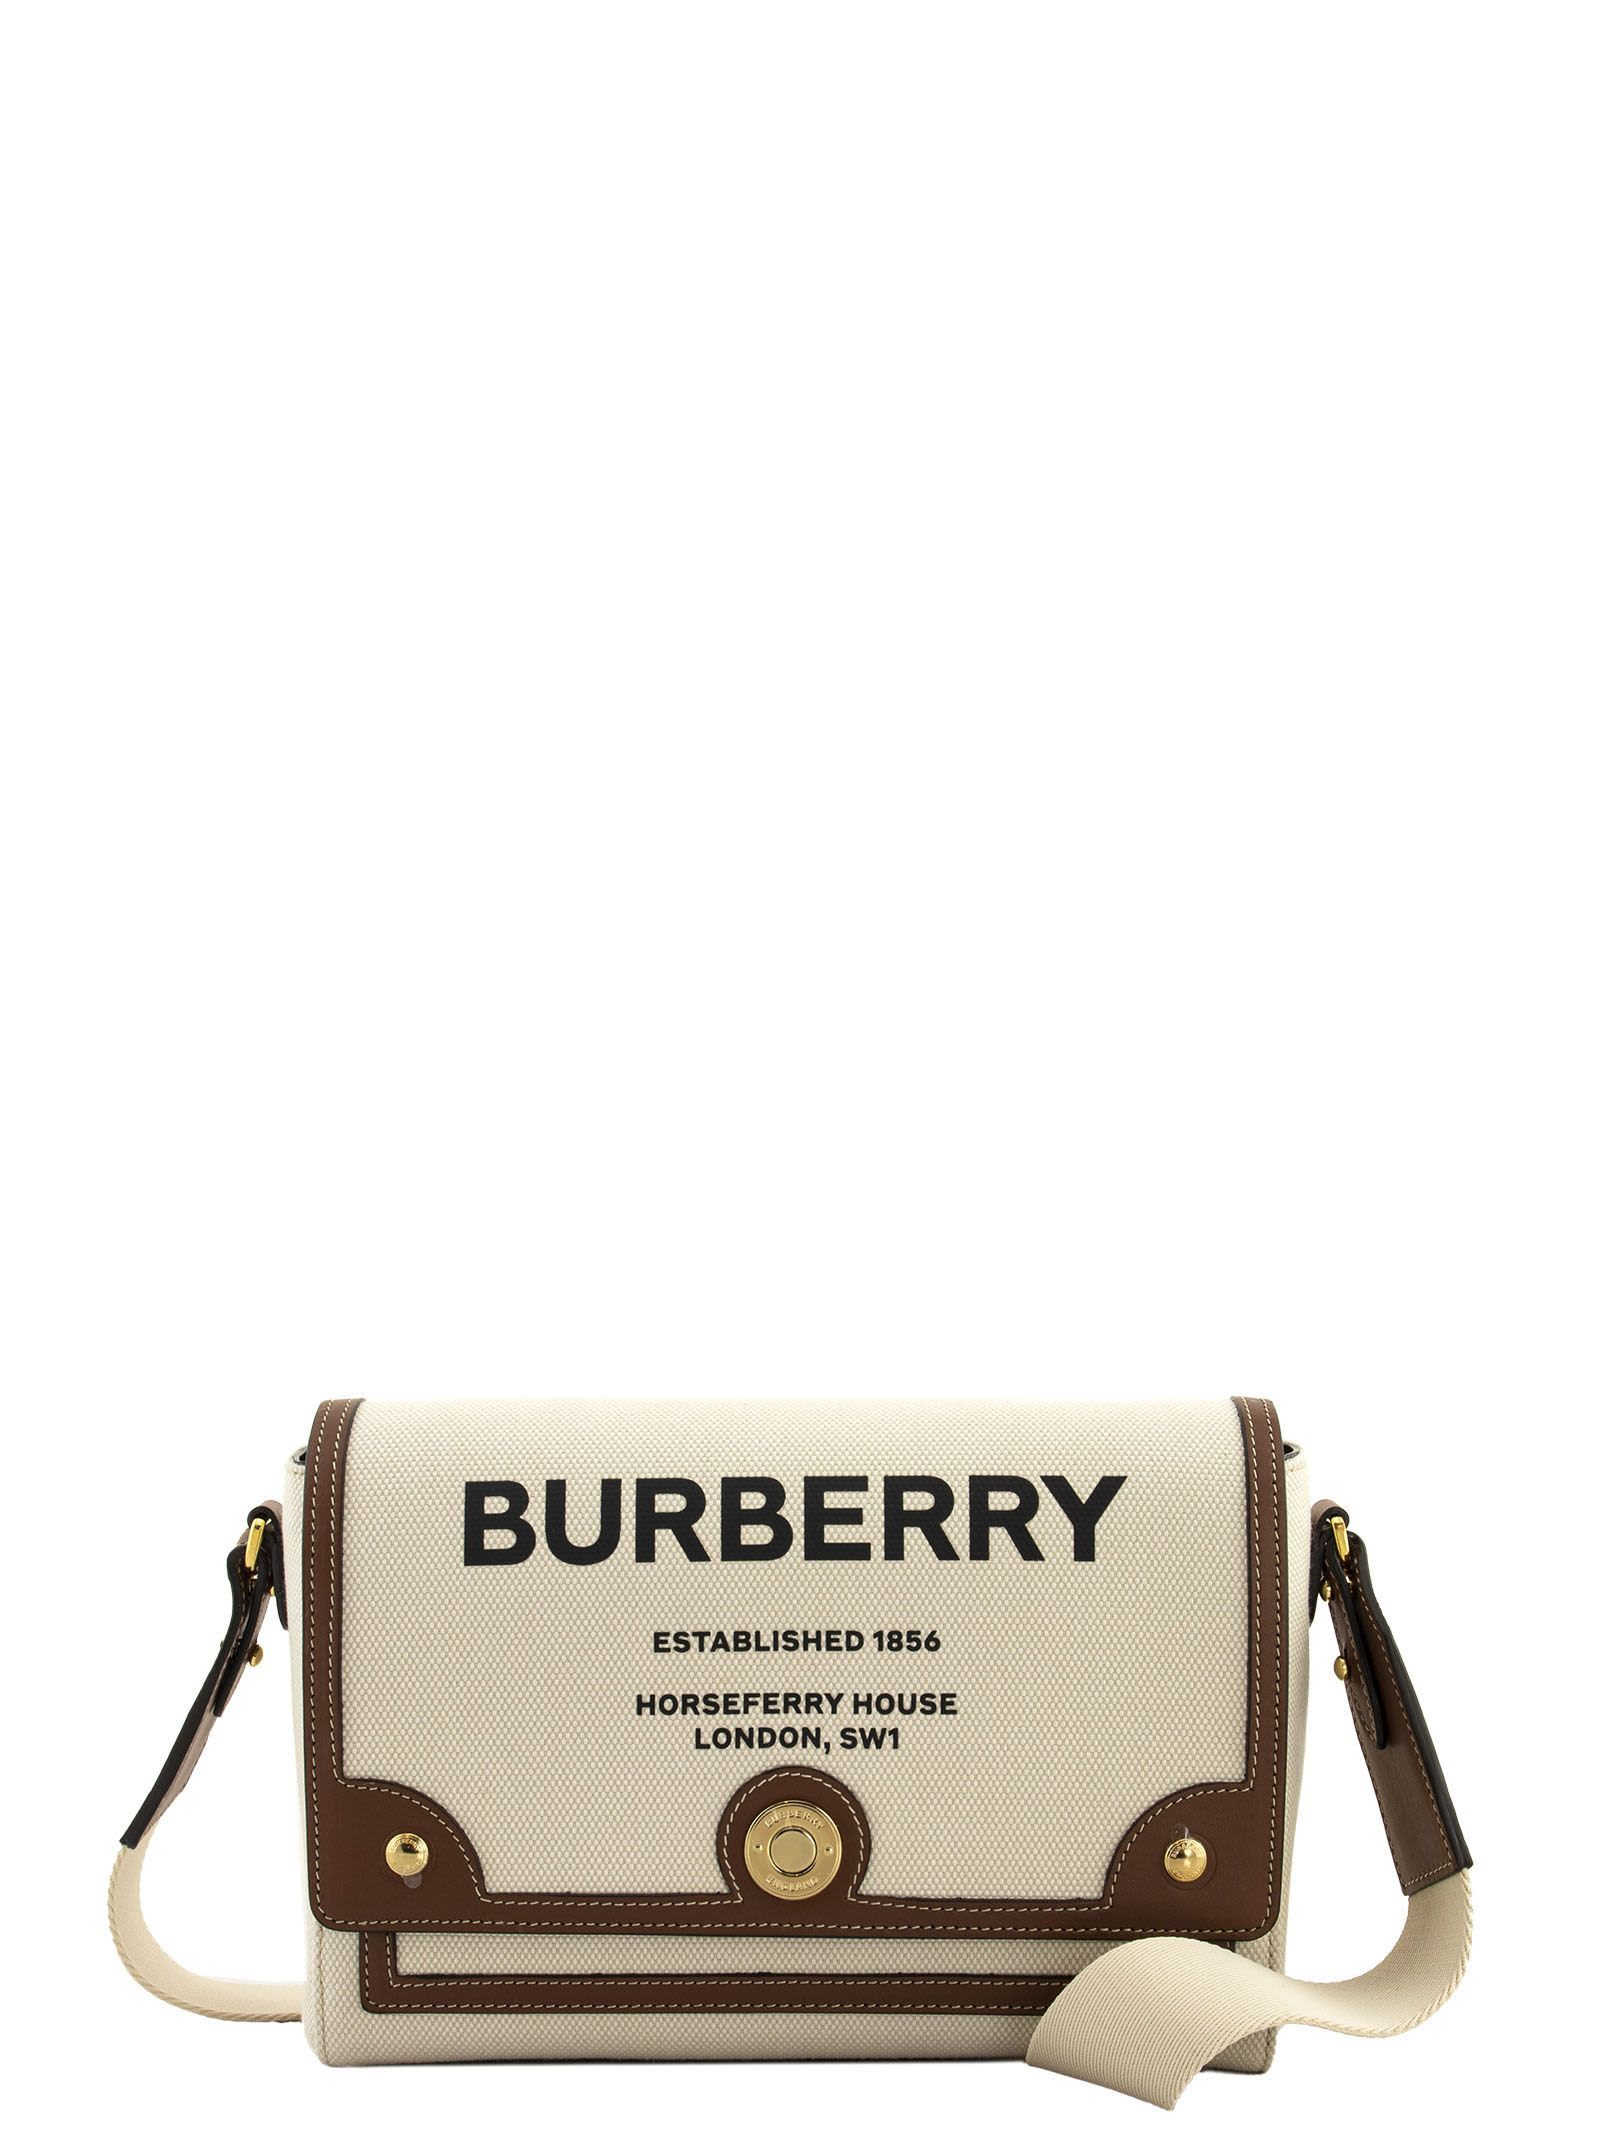 Burberry HORSEFERRY PRINT CANVAS NOTE CROSSBODY BAG MD NOTE